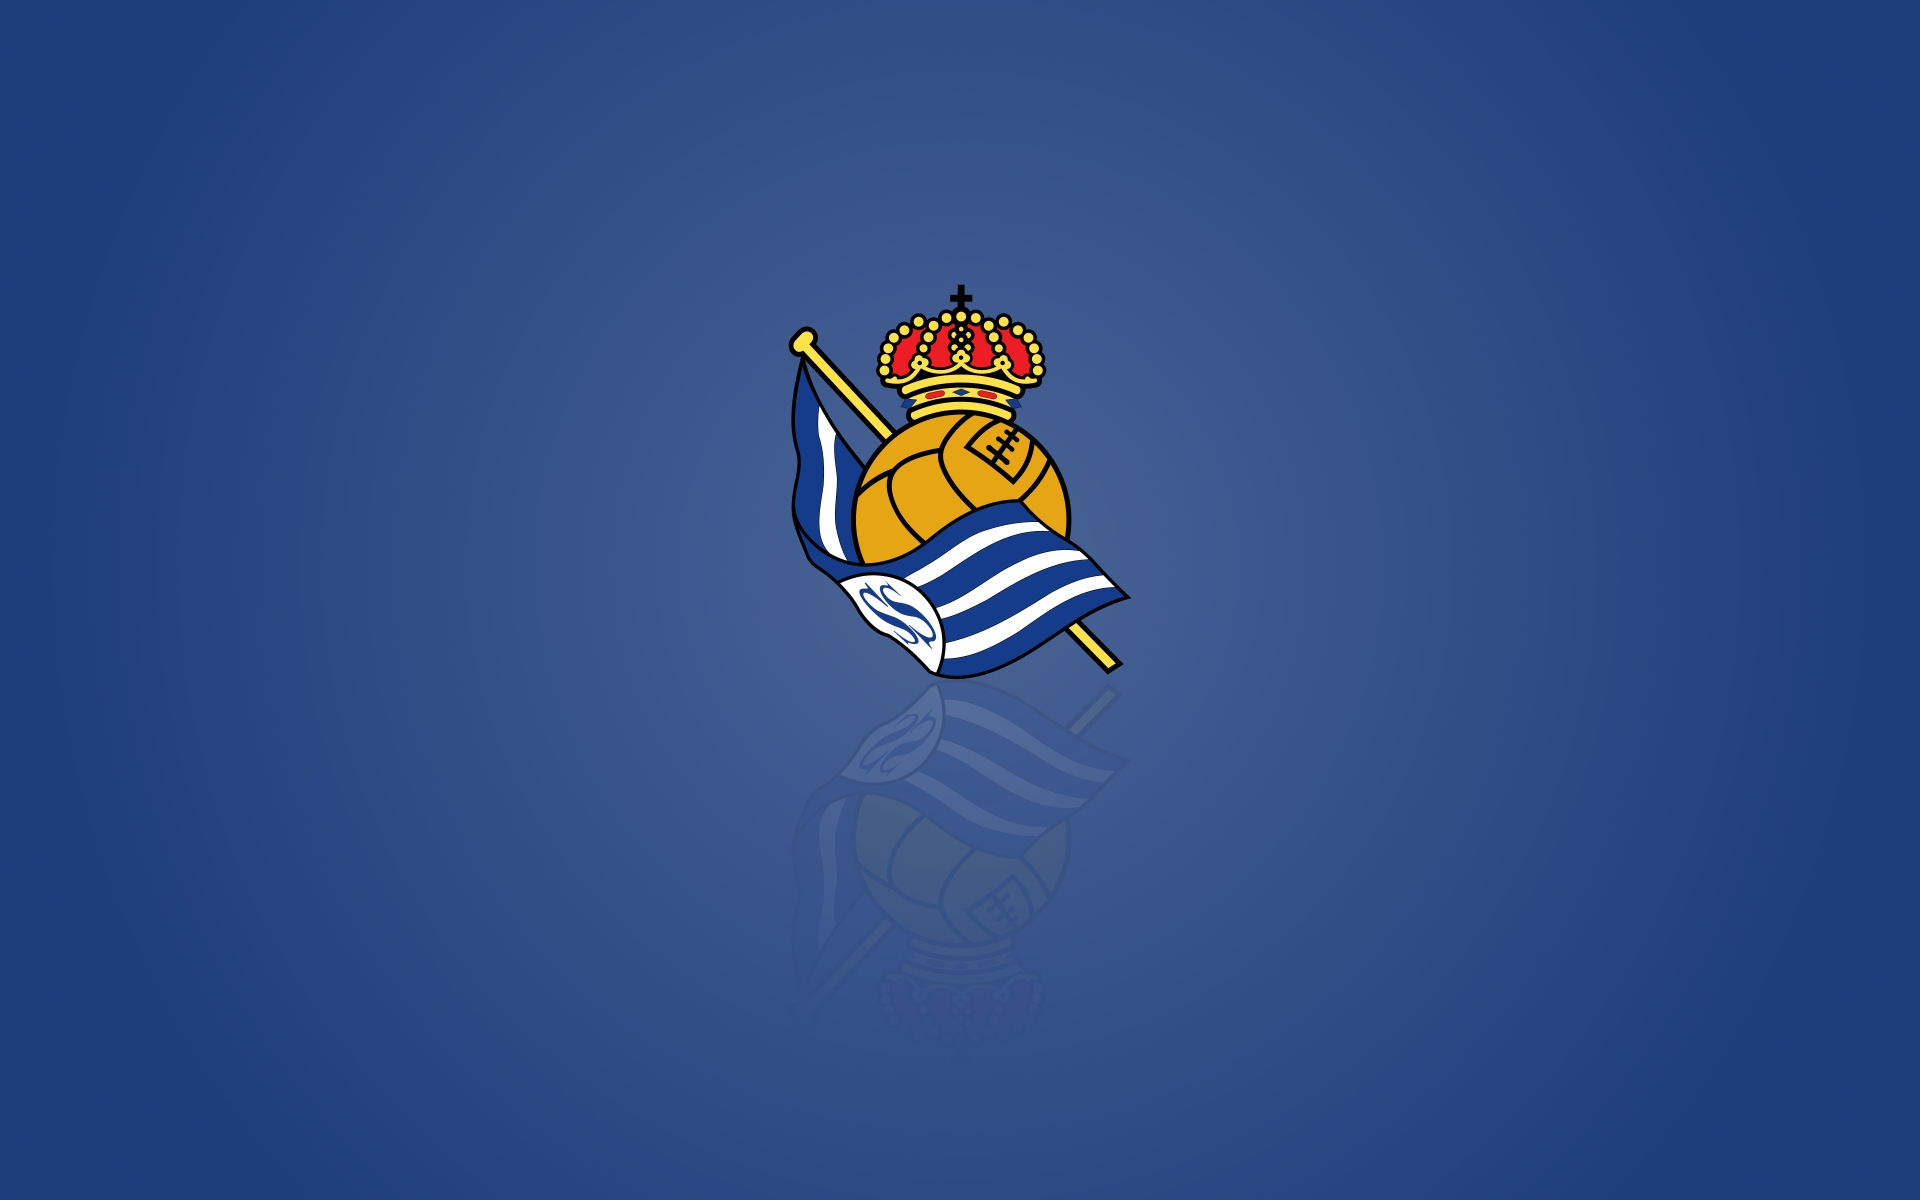 Real Sociedad U2013 Logos Download